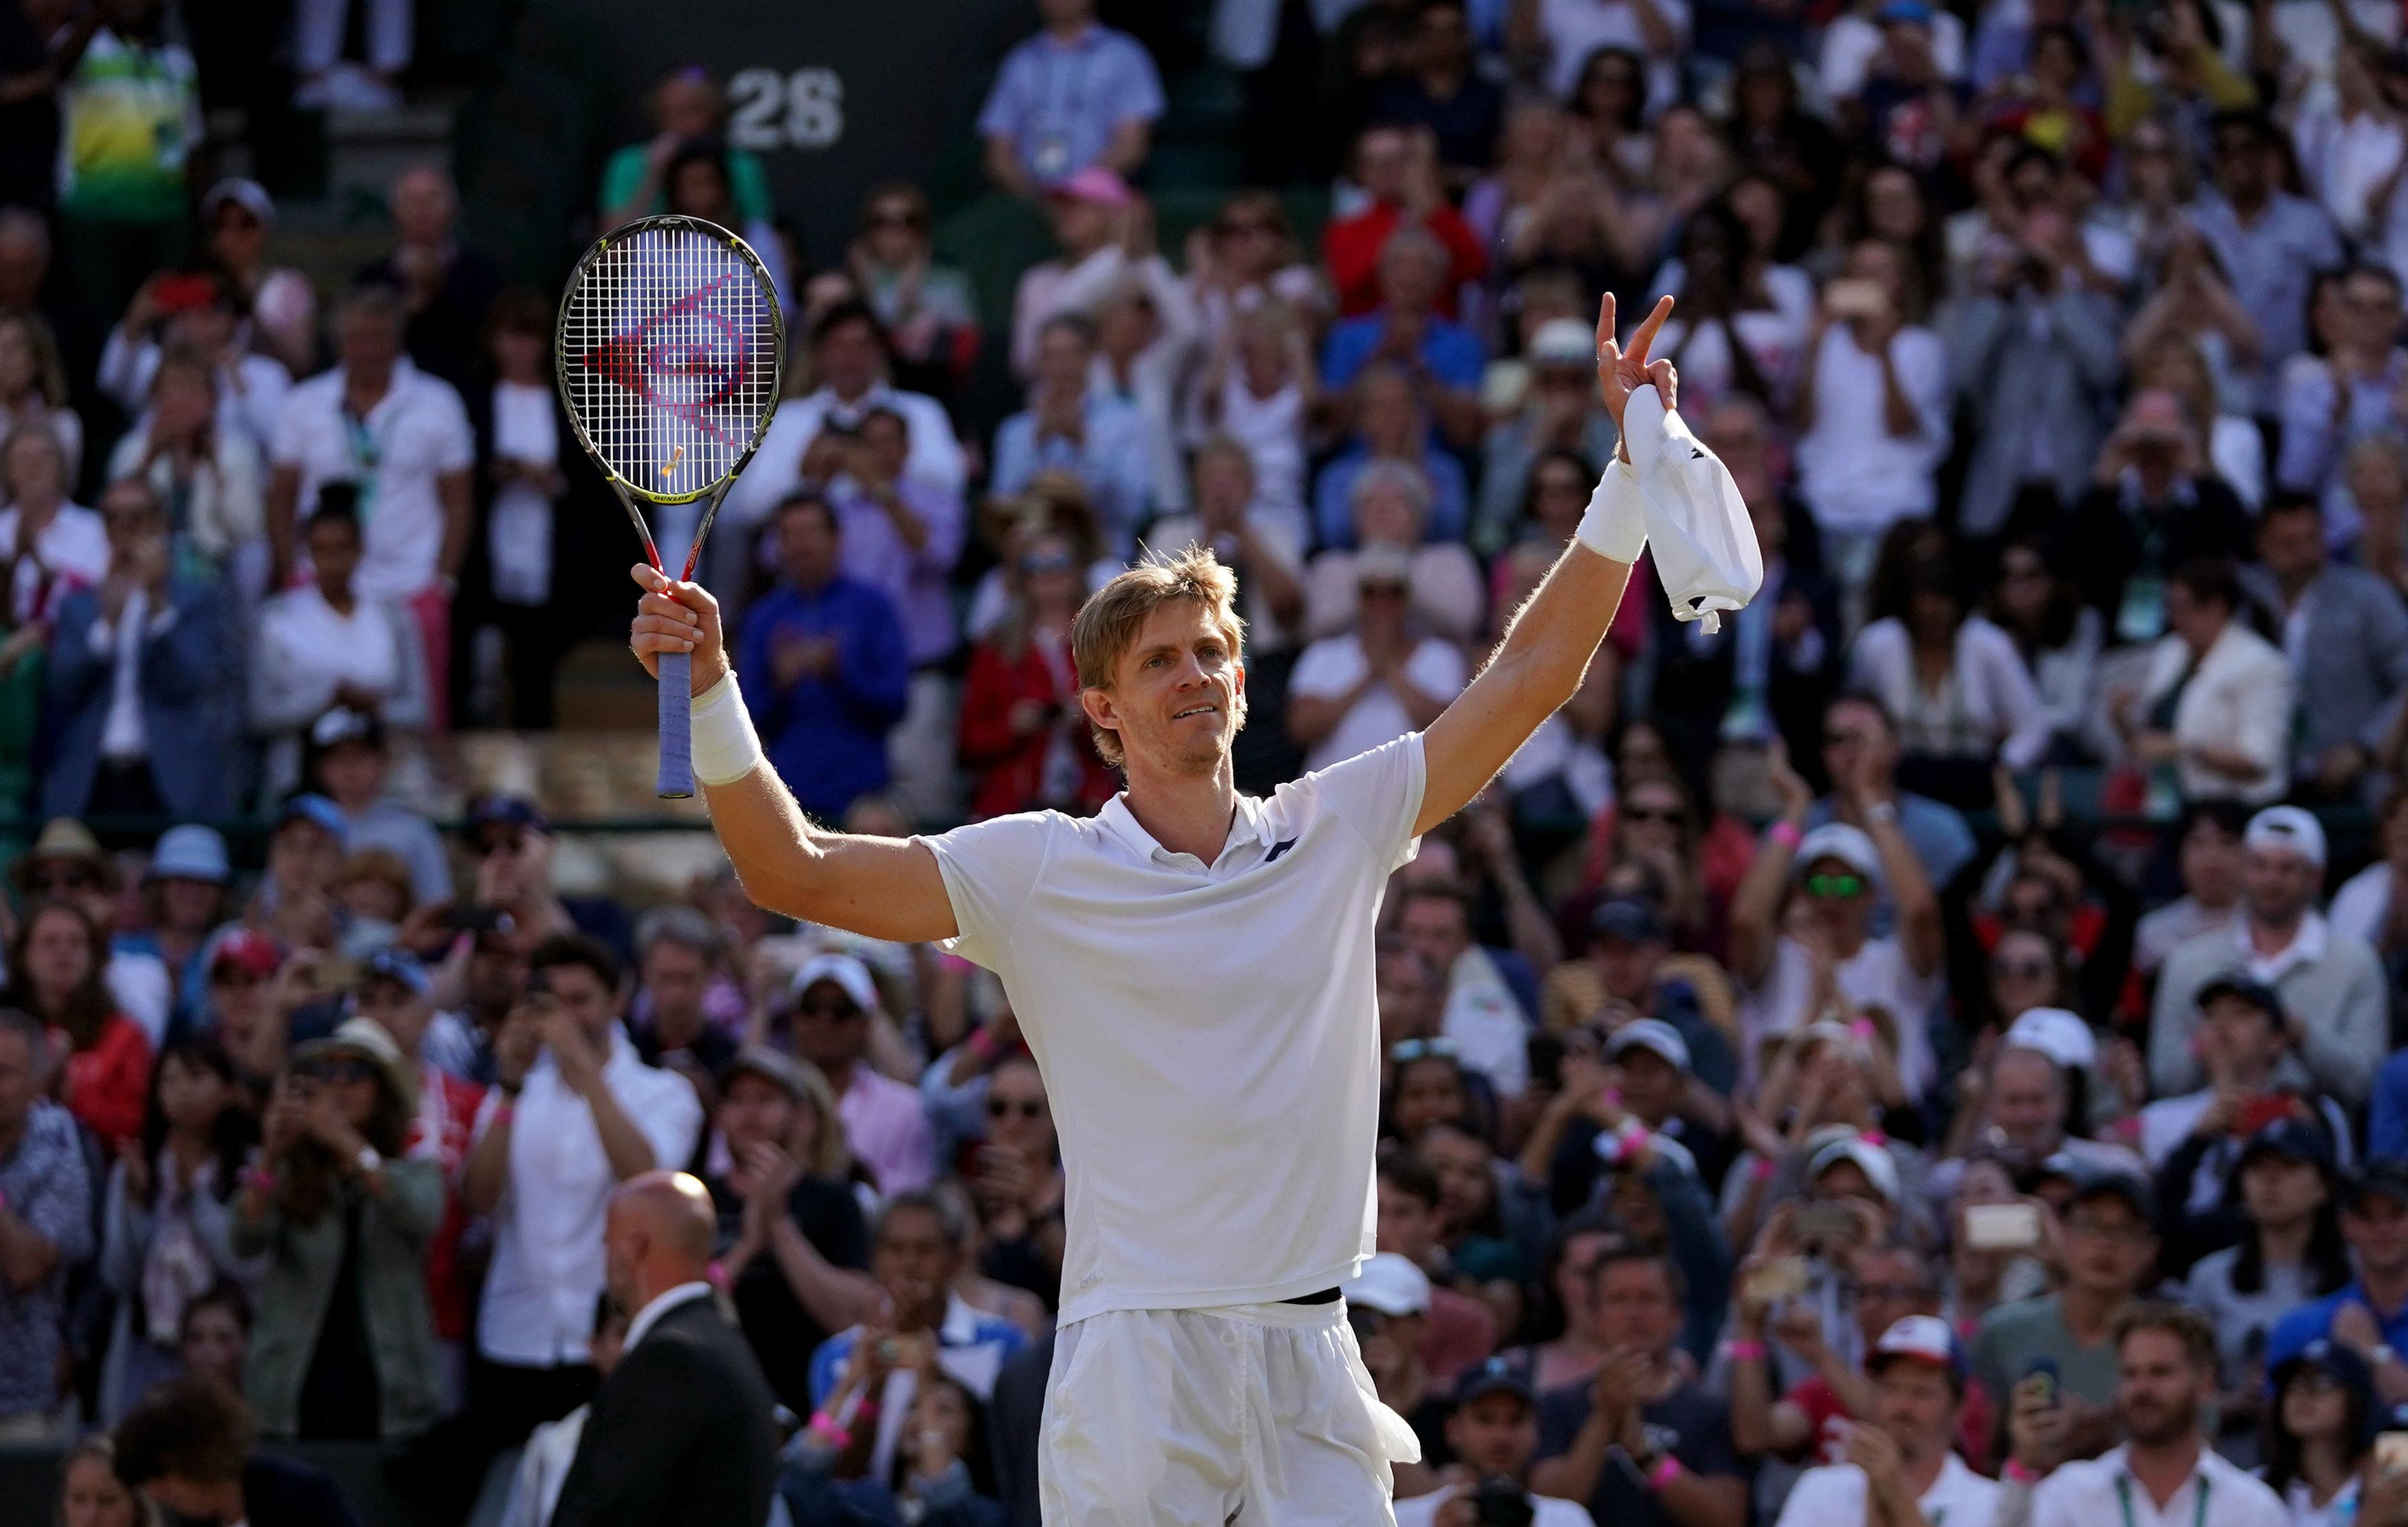 Kevin Anderson battled back from two sets down before beating Roger Federer in the quarter-finals